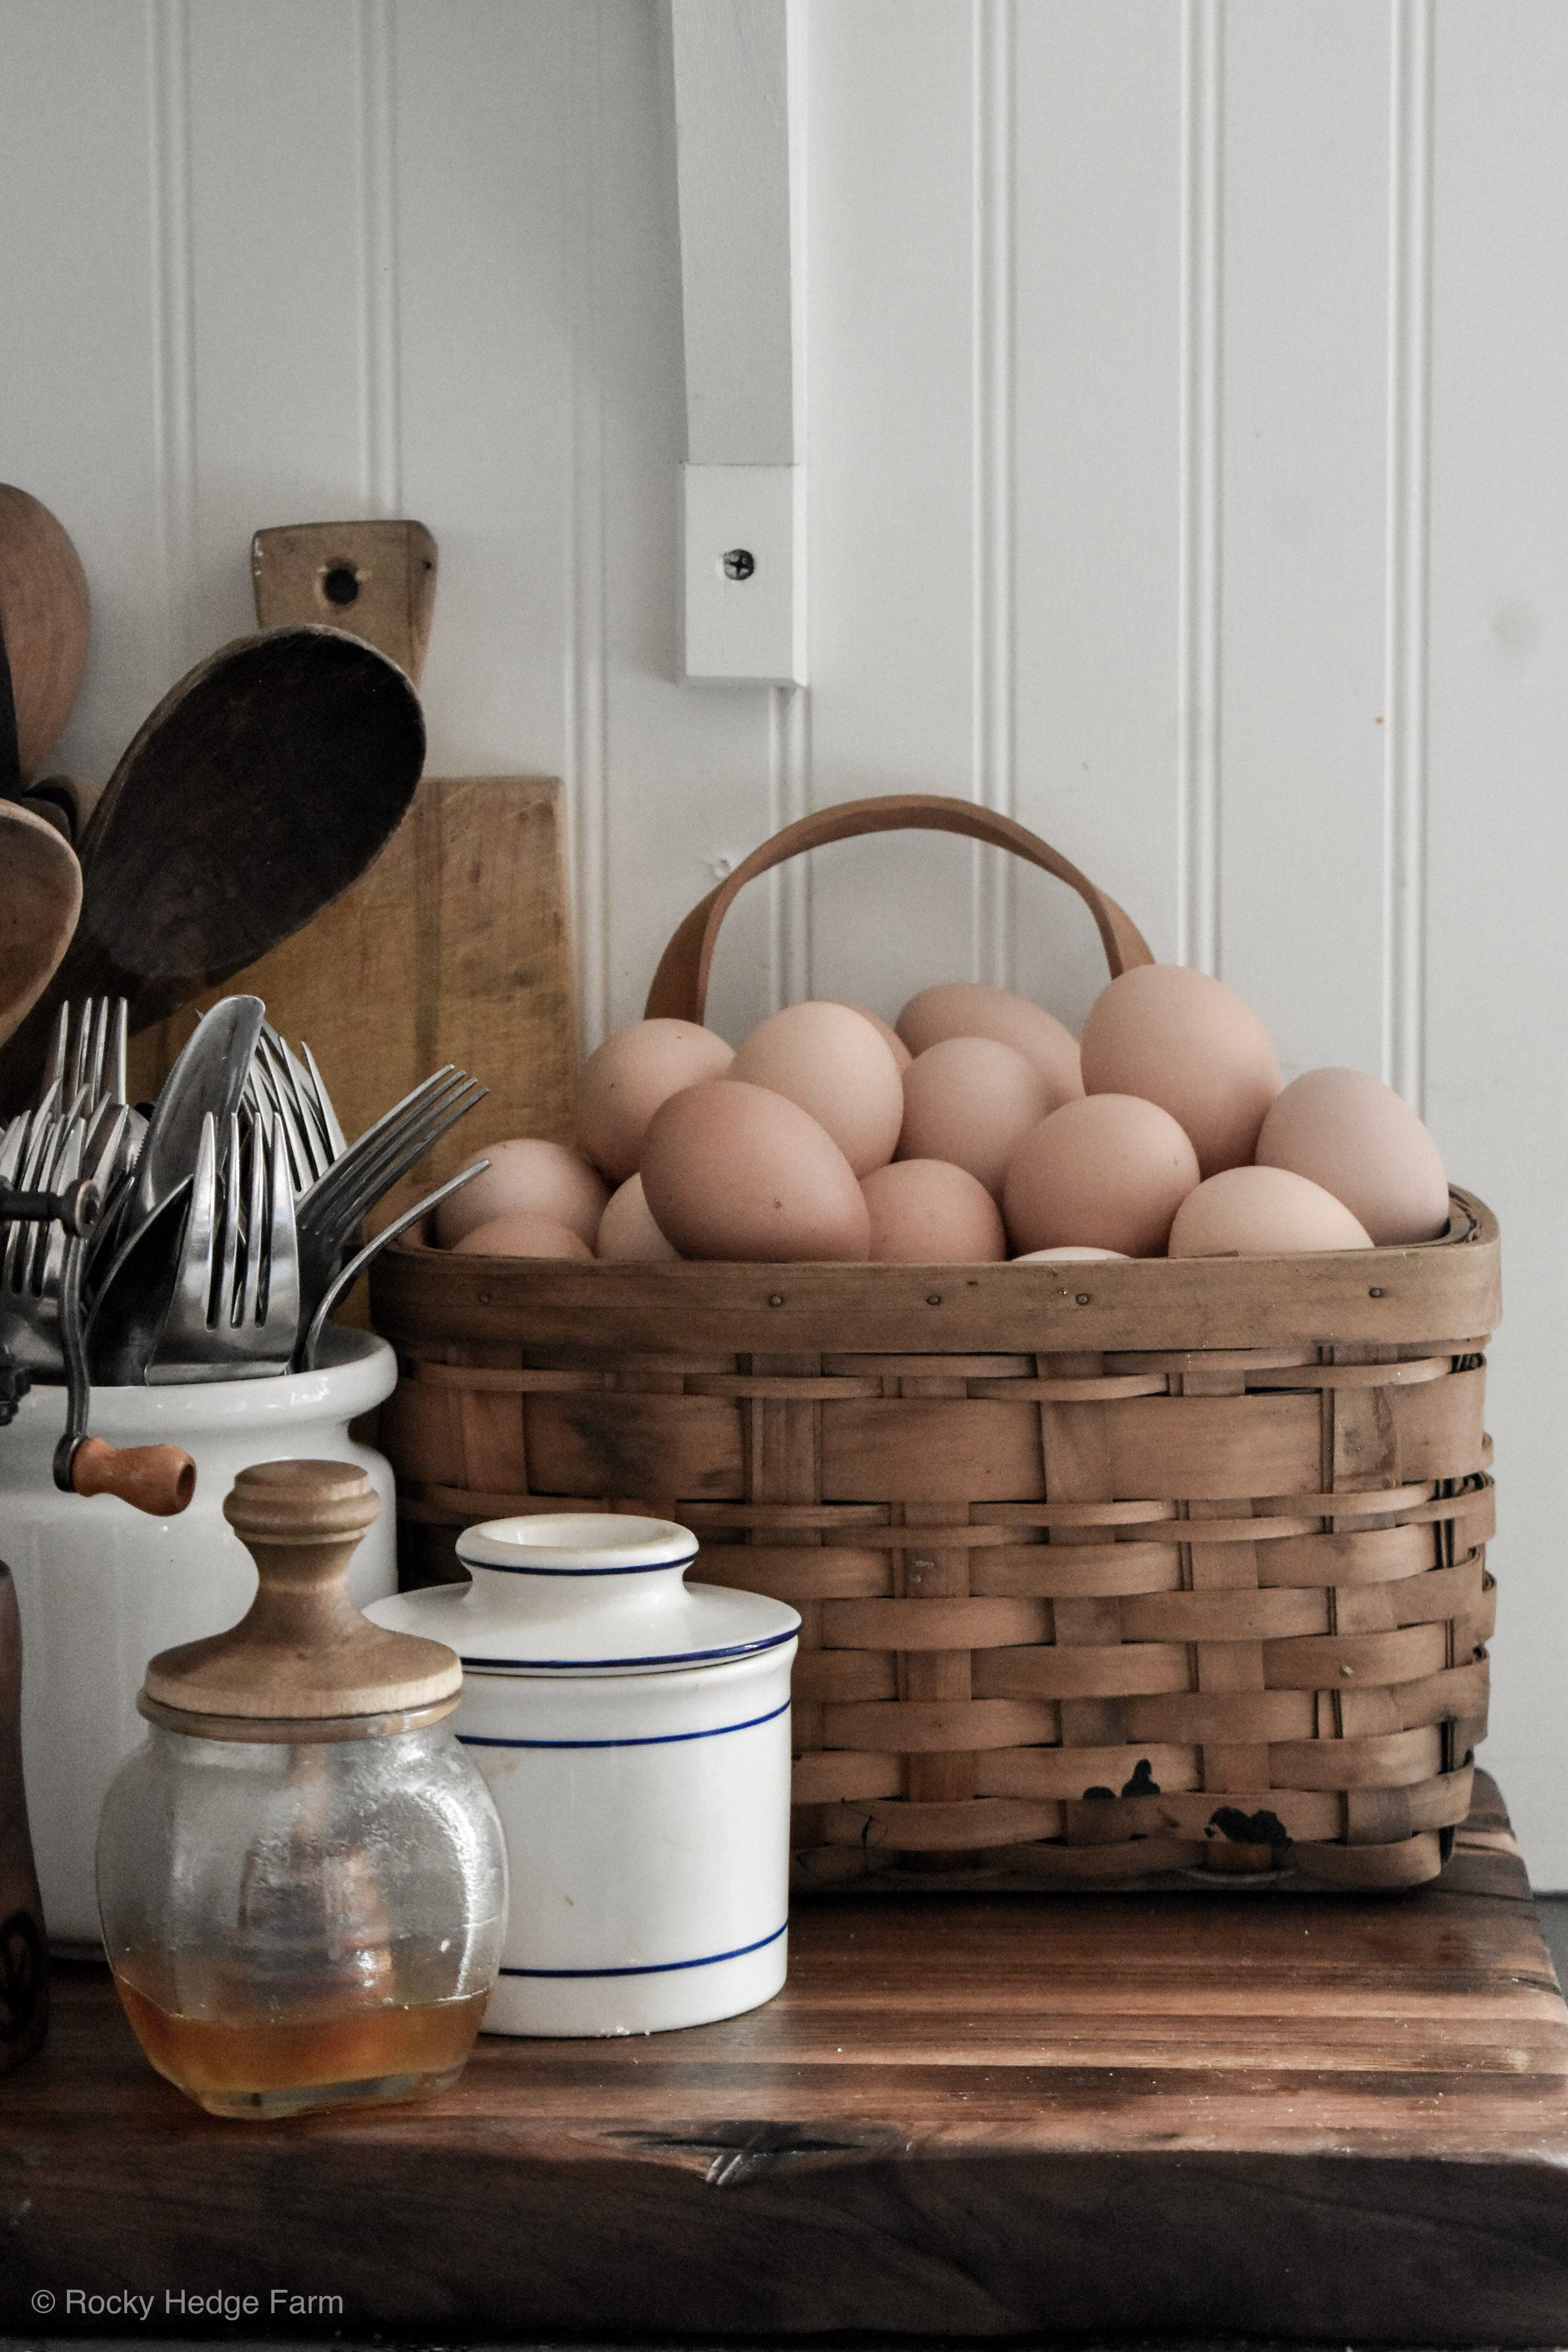 Daily Habits for a Clean and Tidy Kitchen